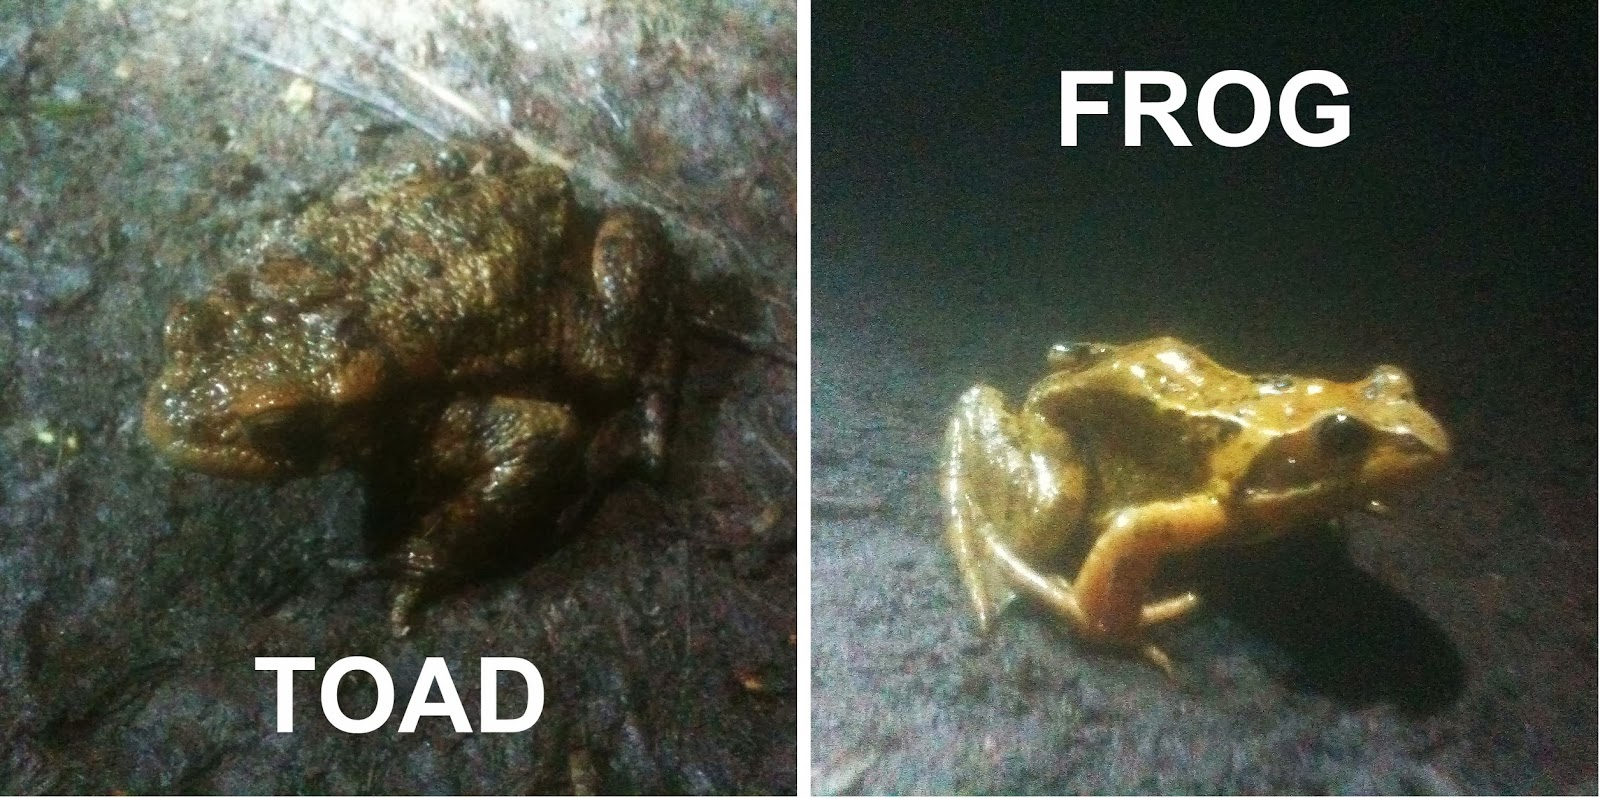 So In My Opinion Birthday Toads And Frogs